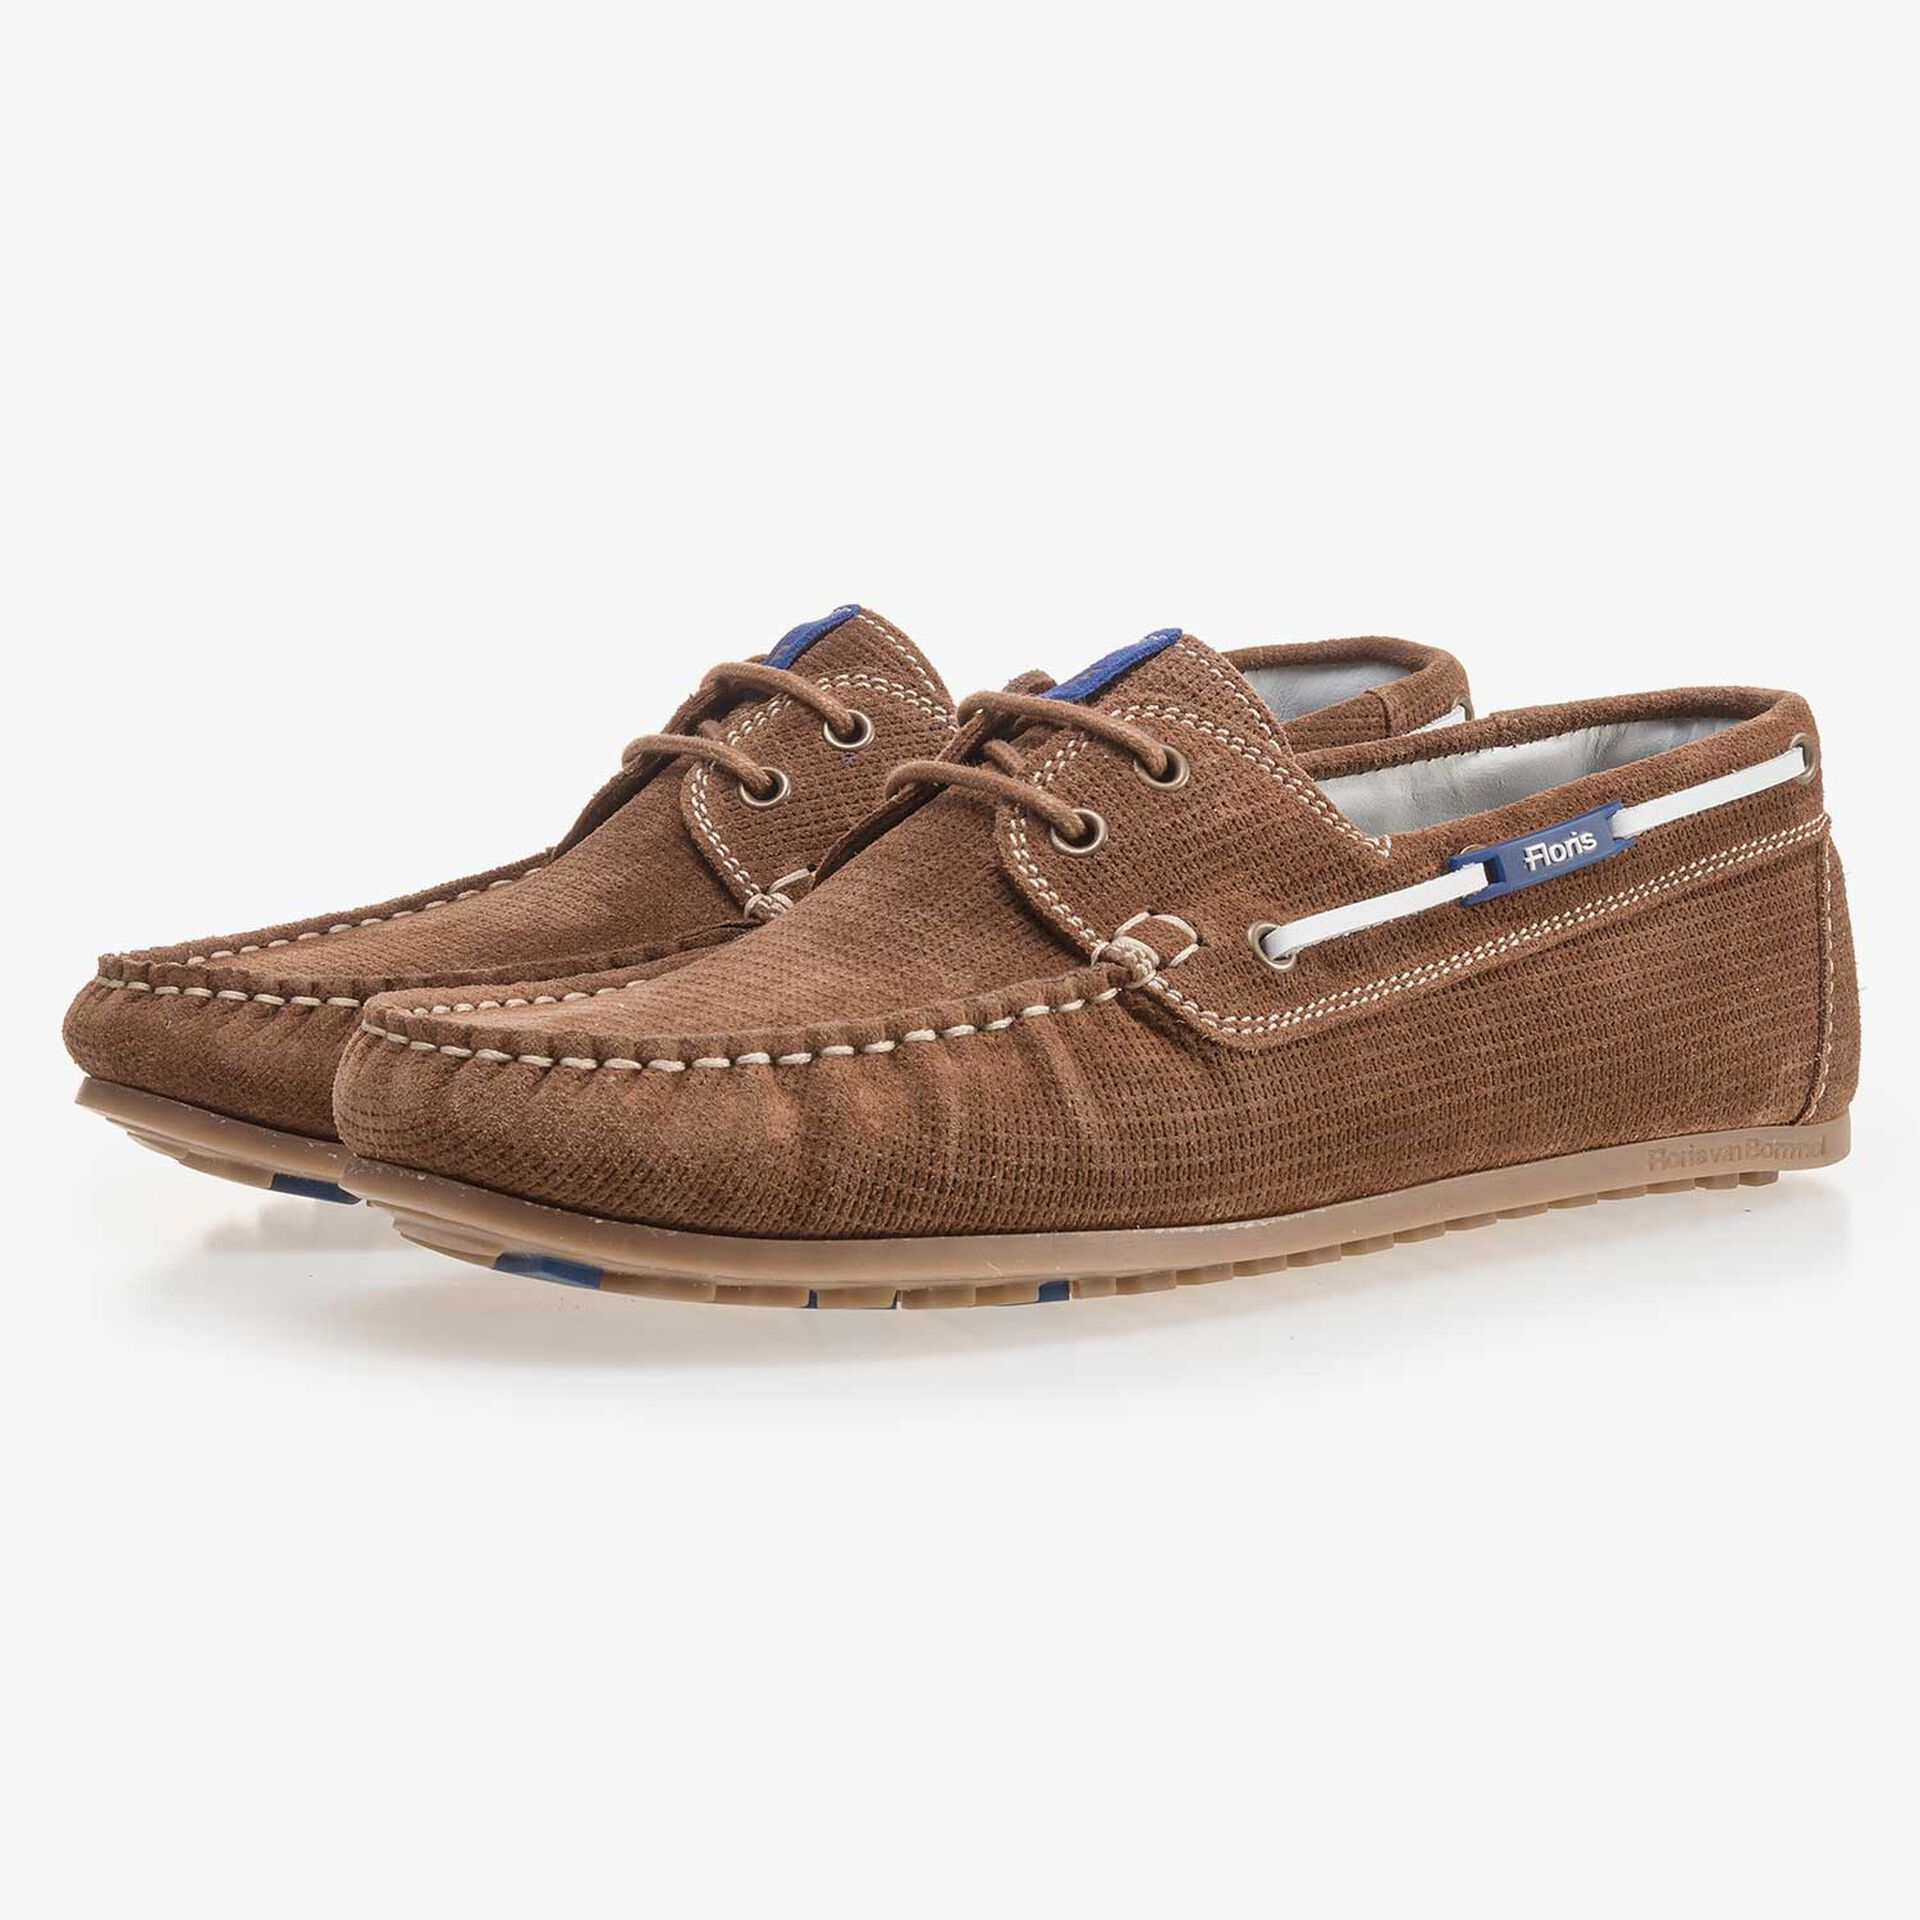 Brown, patterned suede leather boat shoe